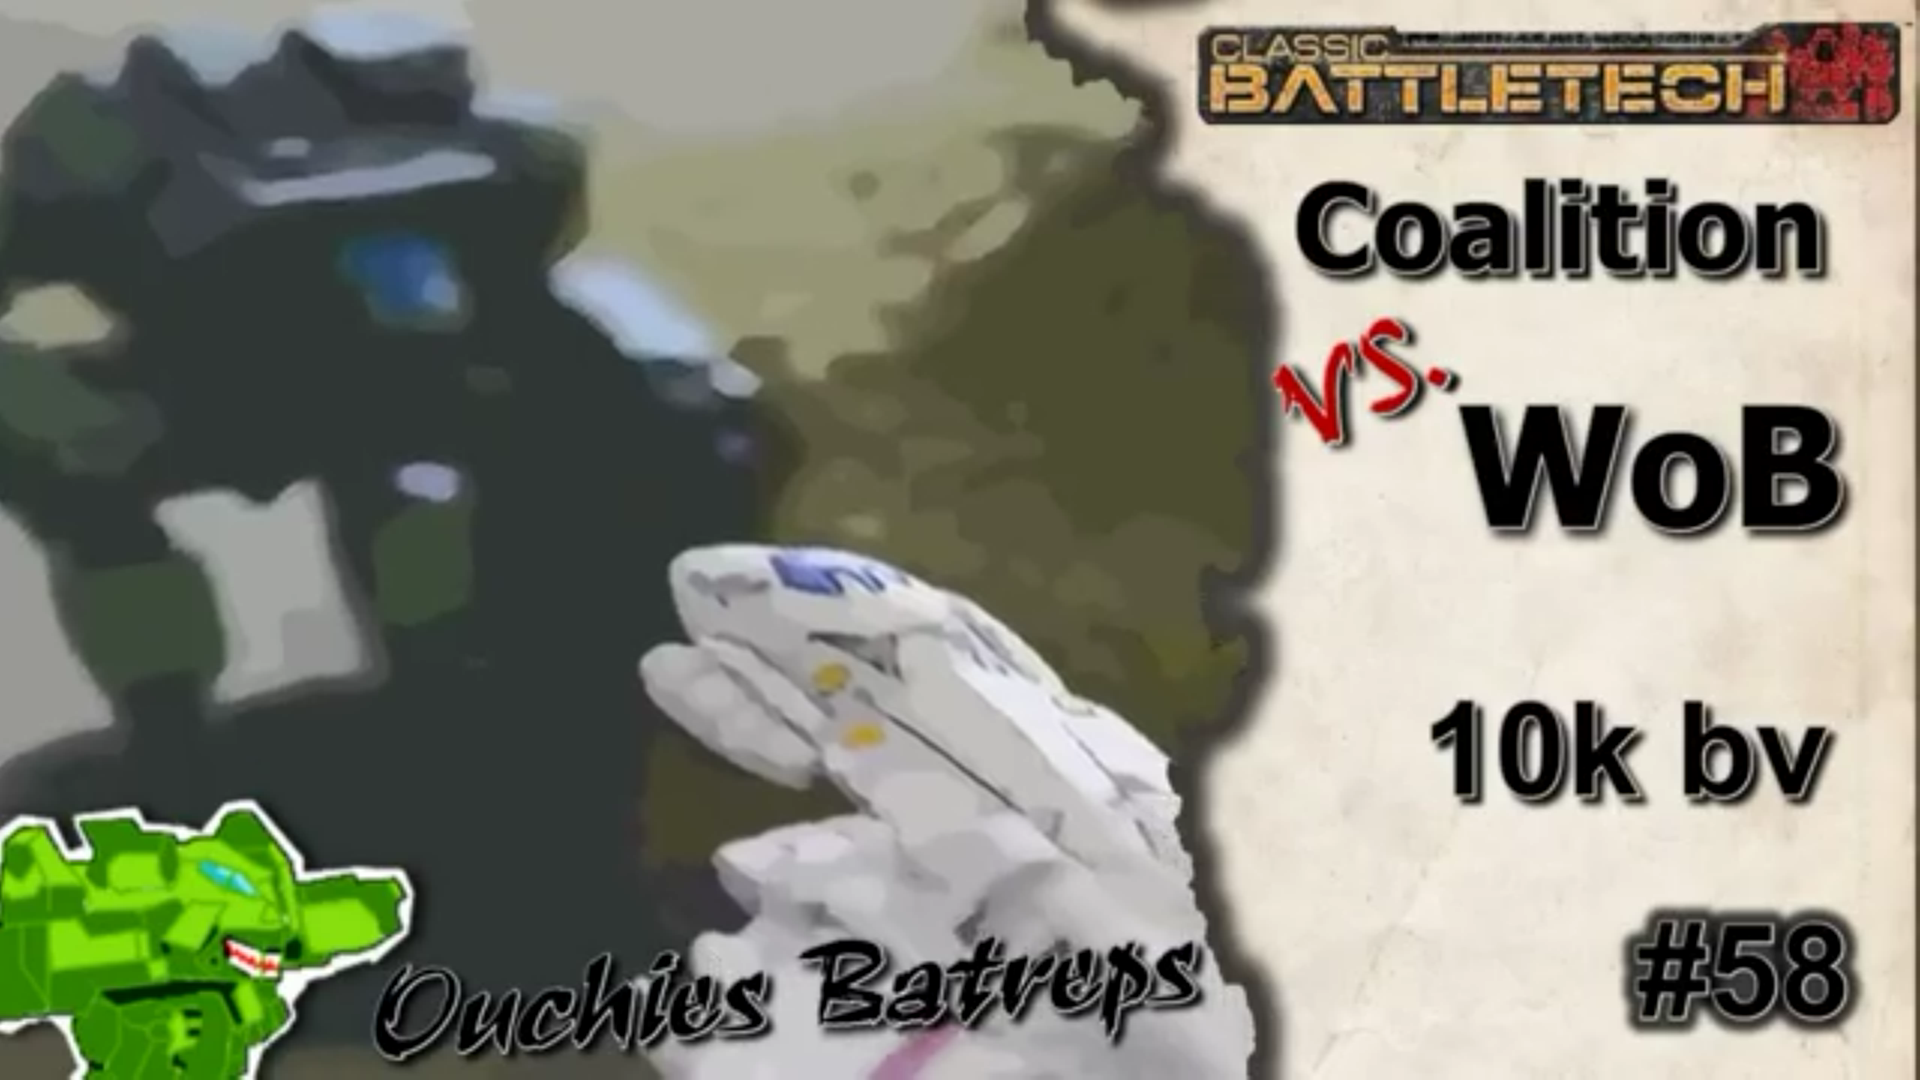 #58 Coalition vs. WoB